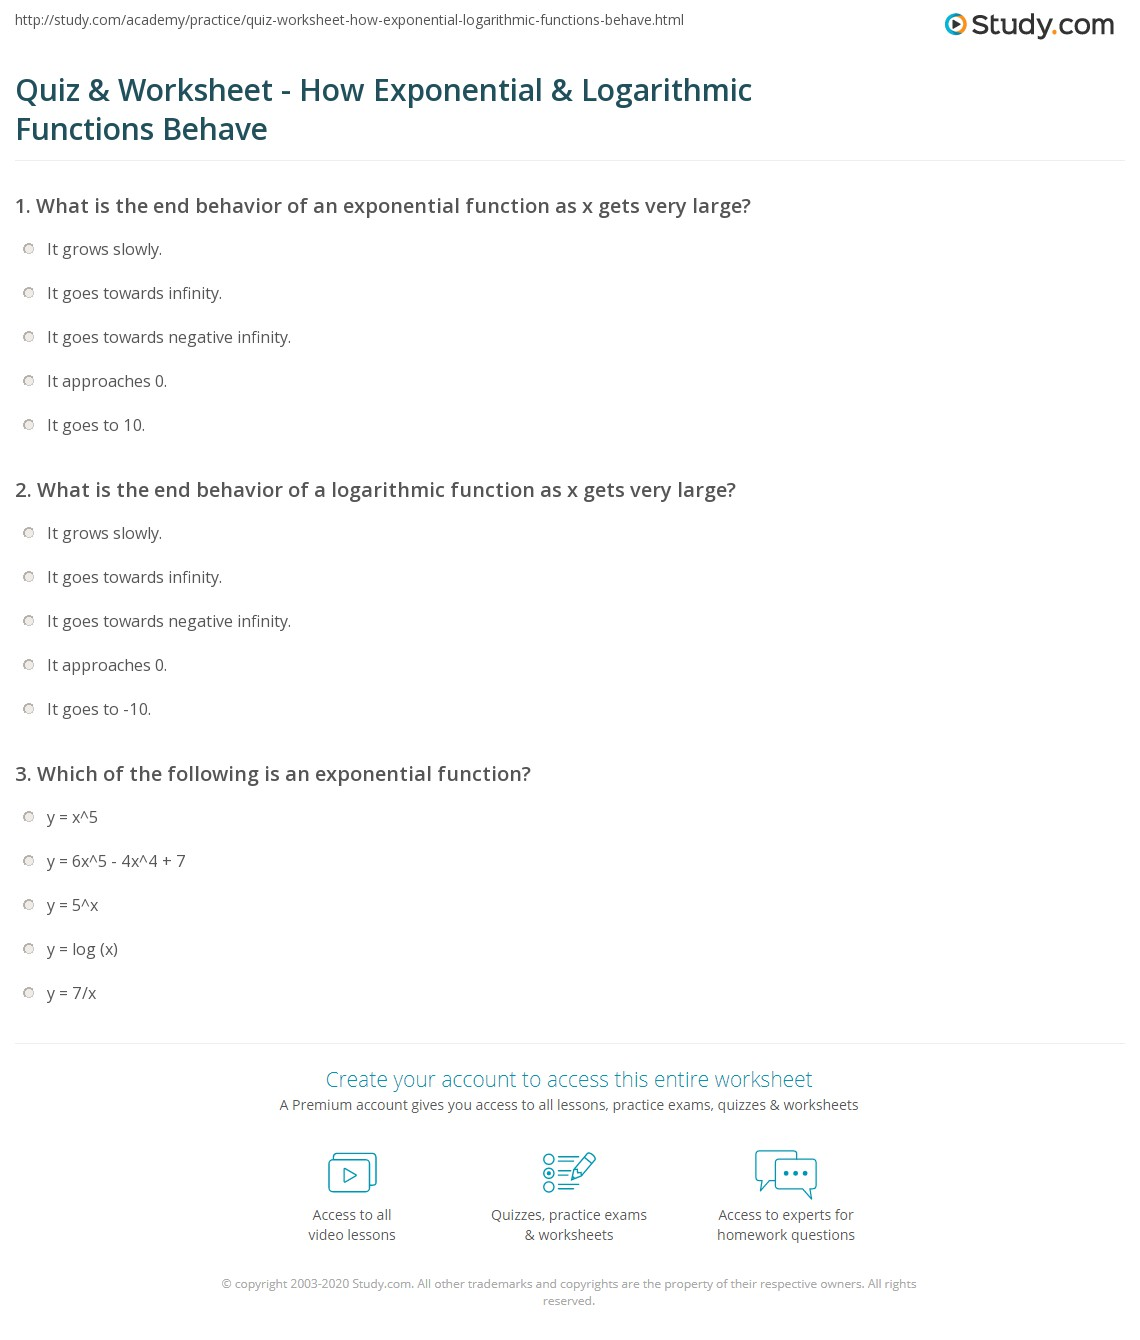 Quiz Worksheet How Exponential Logarithmic Functions Behave – Exponential and Logarithmic Functions Worksheets